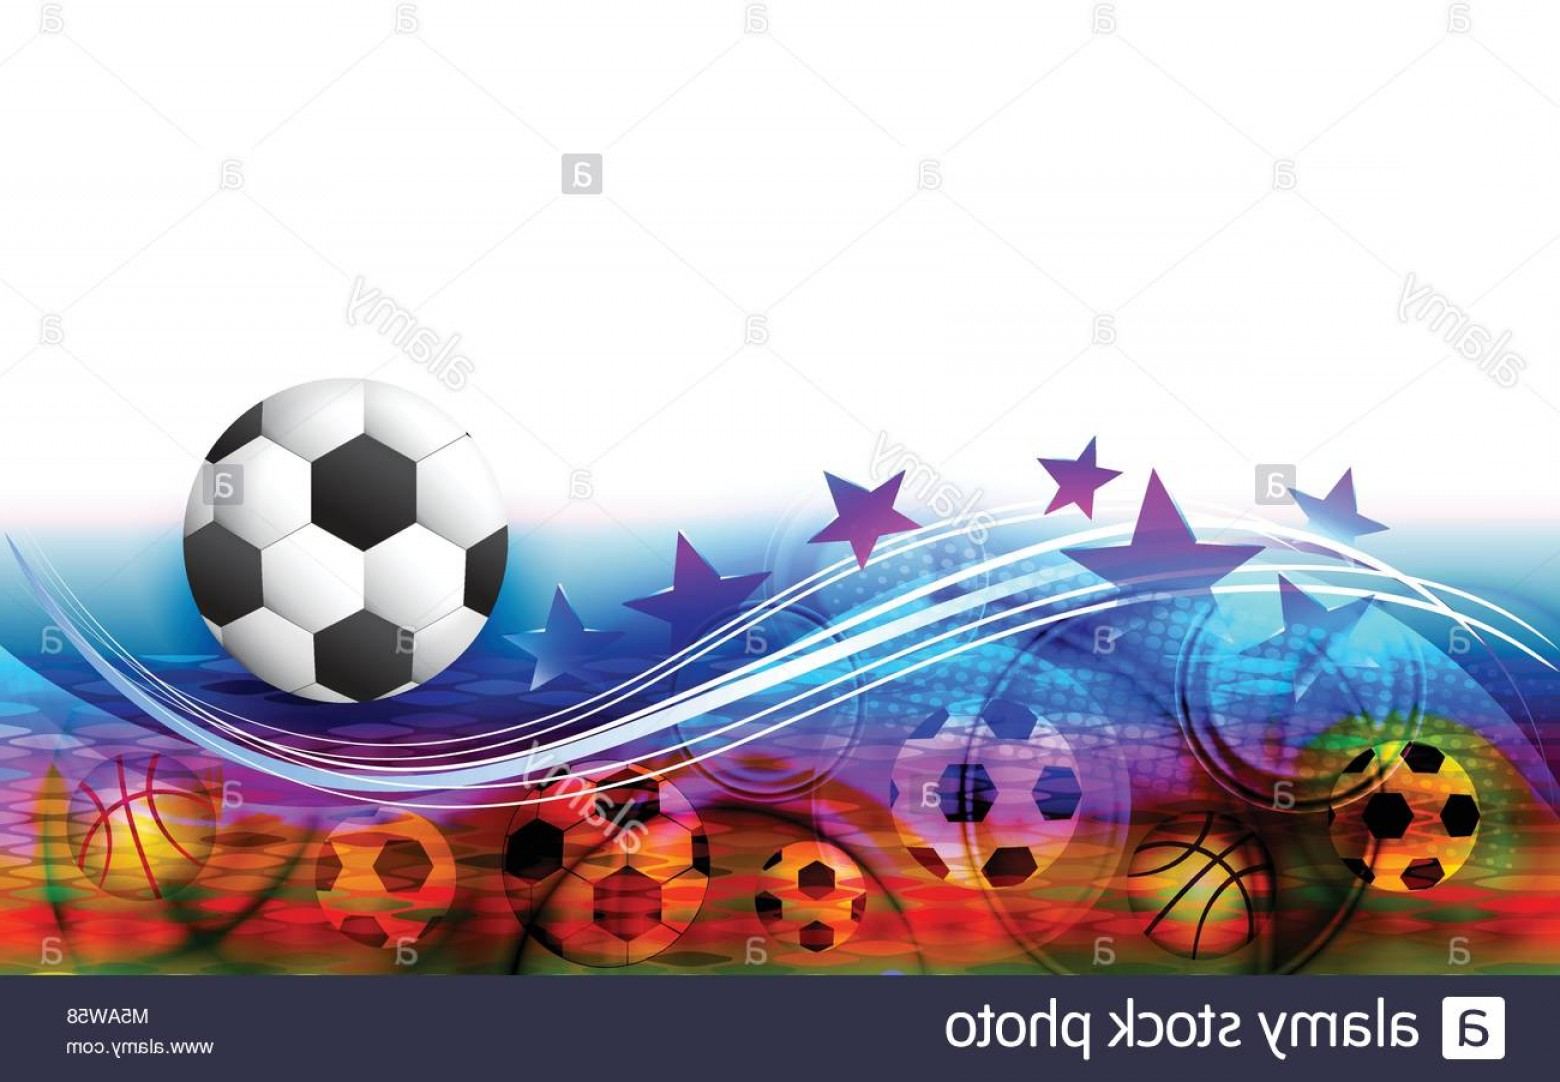 Soccer Blue Background Vector Graphics: Stock Photo Abstract Sports Background With Soccer Ball Football Field